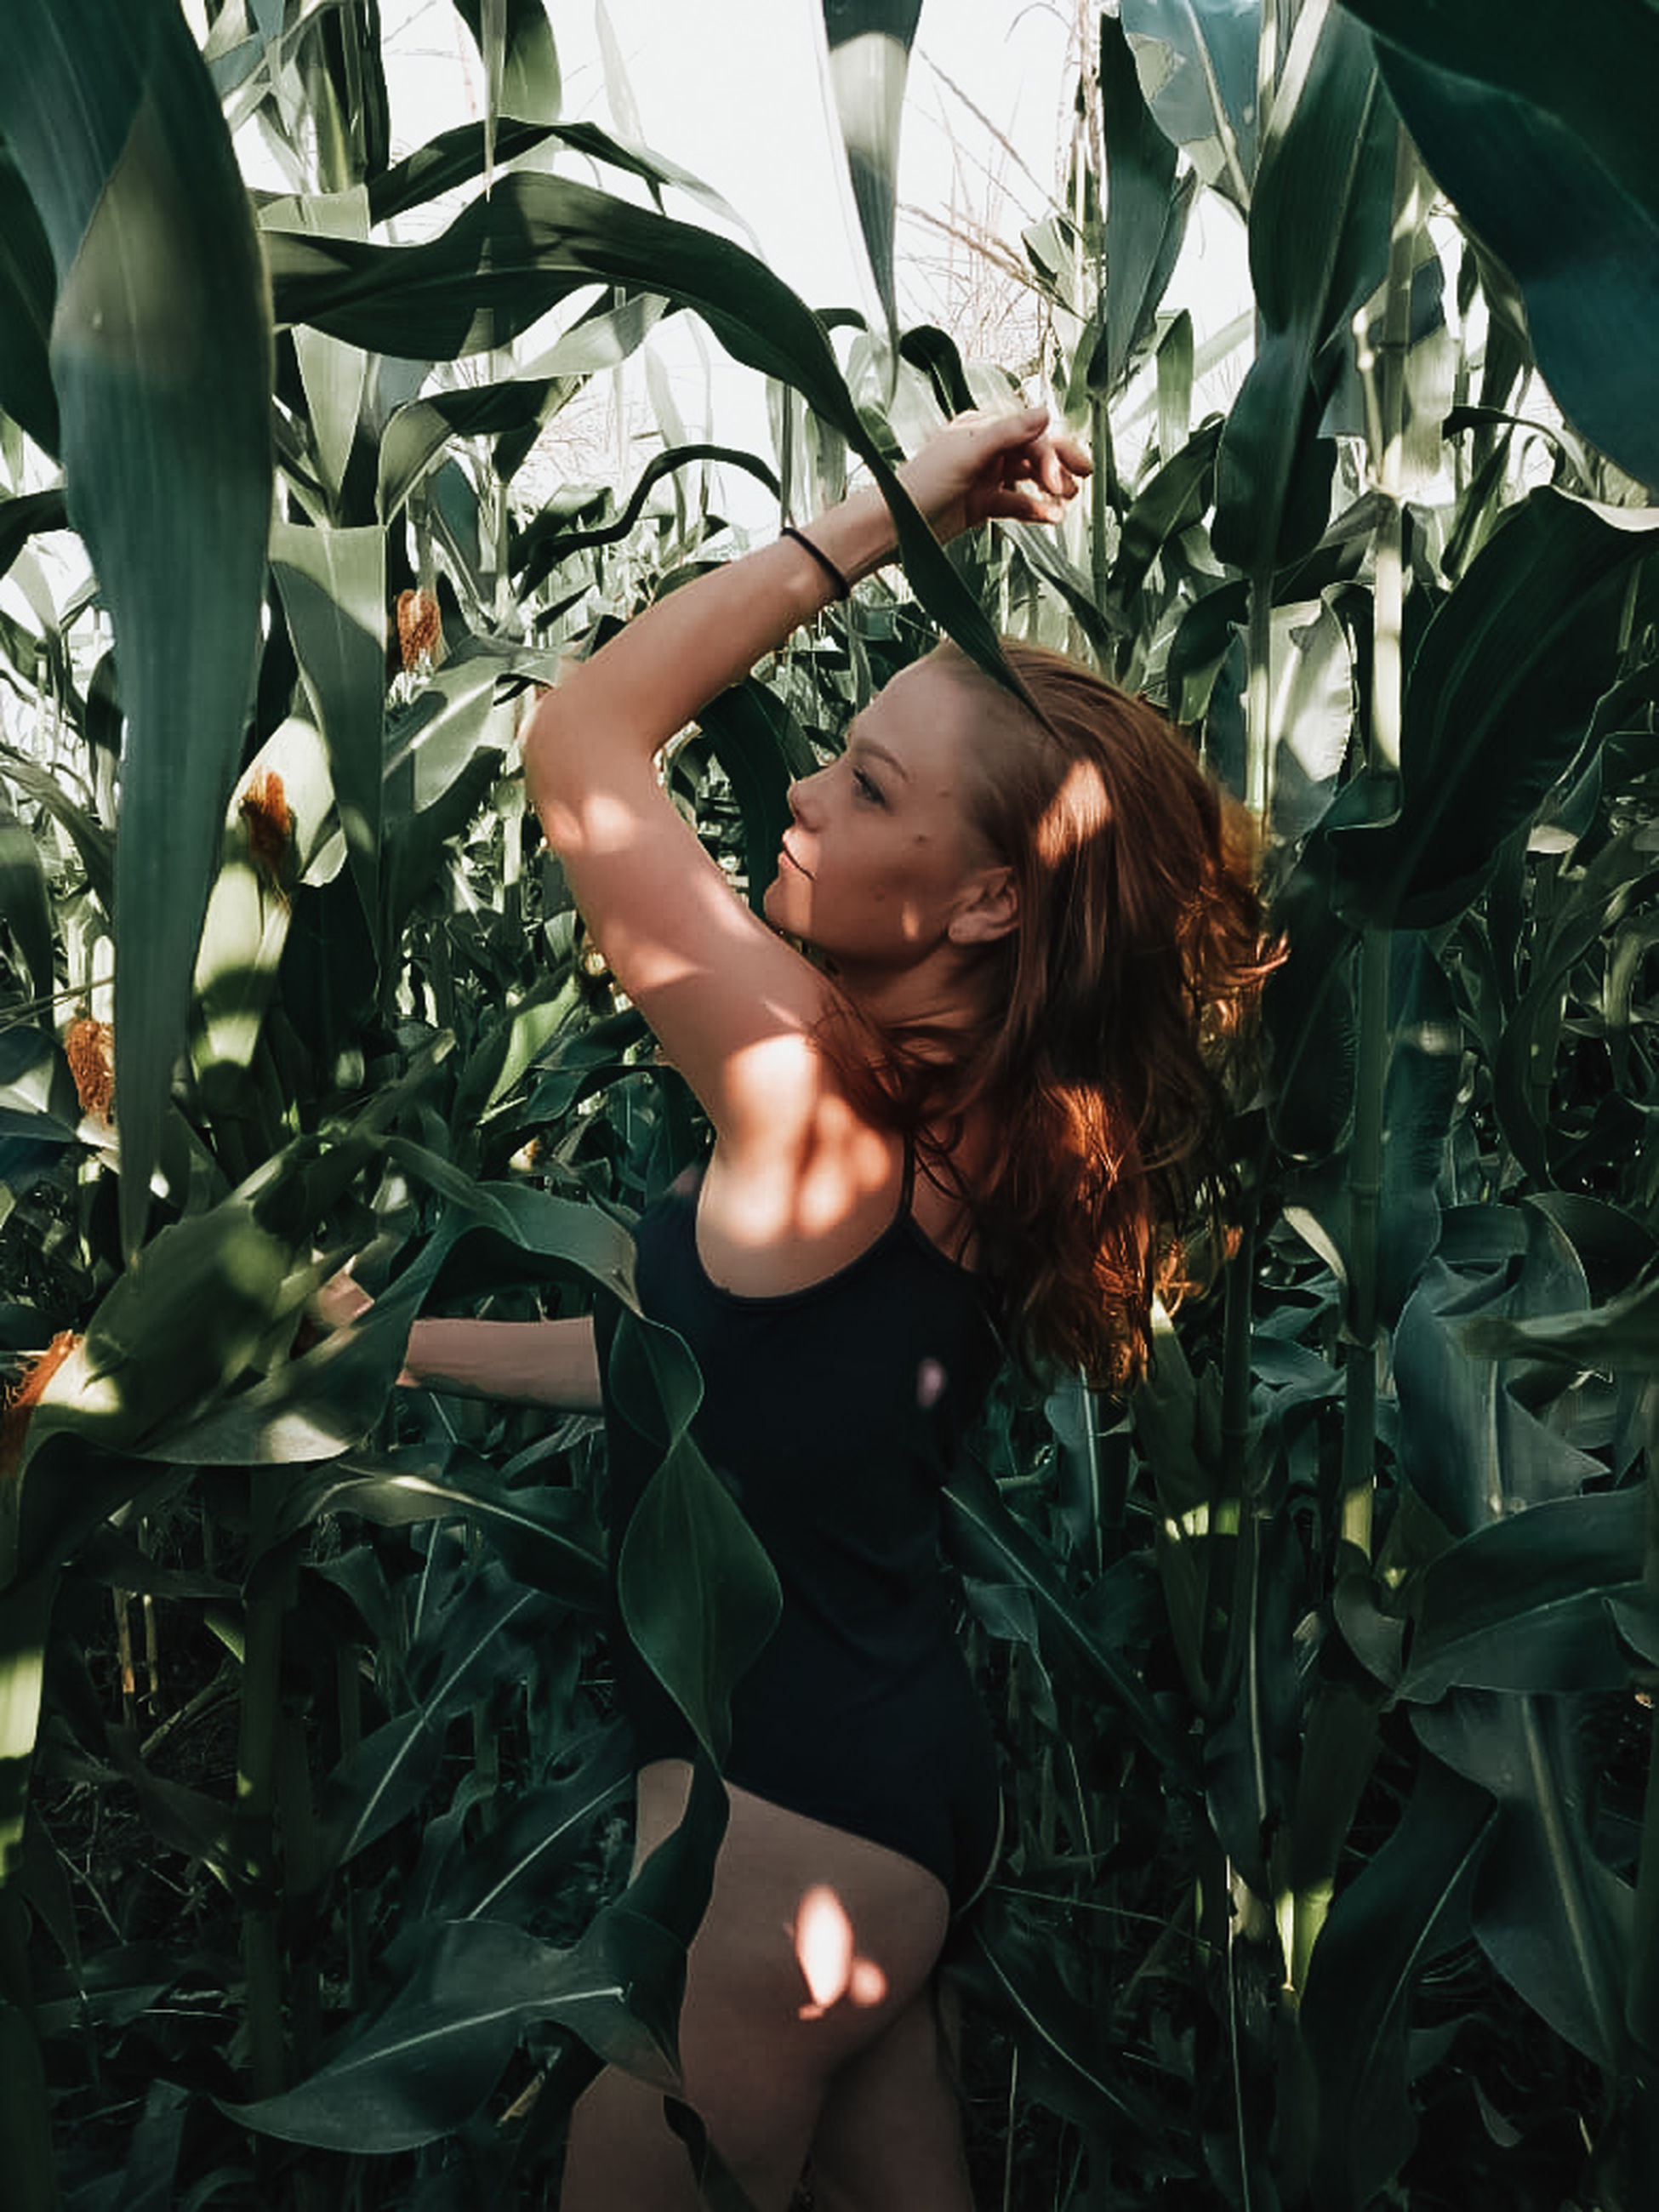 one person, leisure activity, plant, real people, lifestyles, leaf, growth, plant part, nature, young adult, young women, green color, women, hair, hairstyle, casual clothing, day, long hair, outdoors, beautiful woman